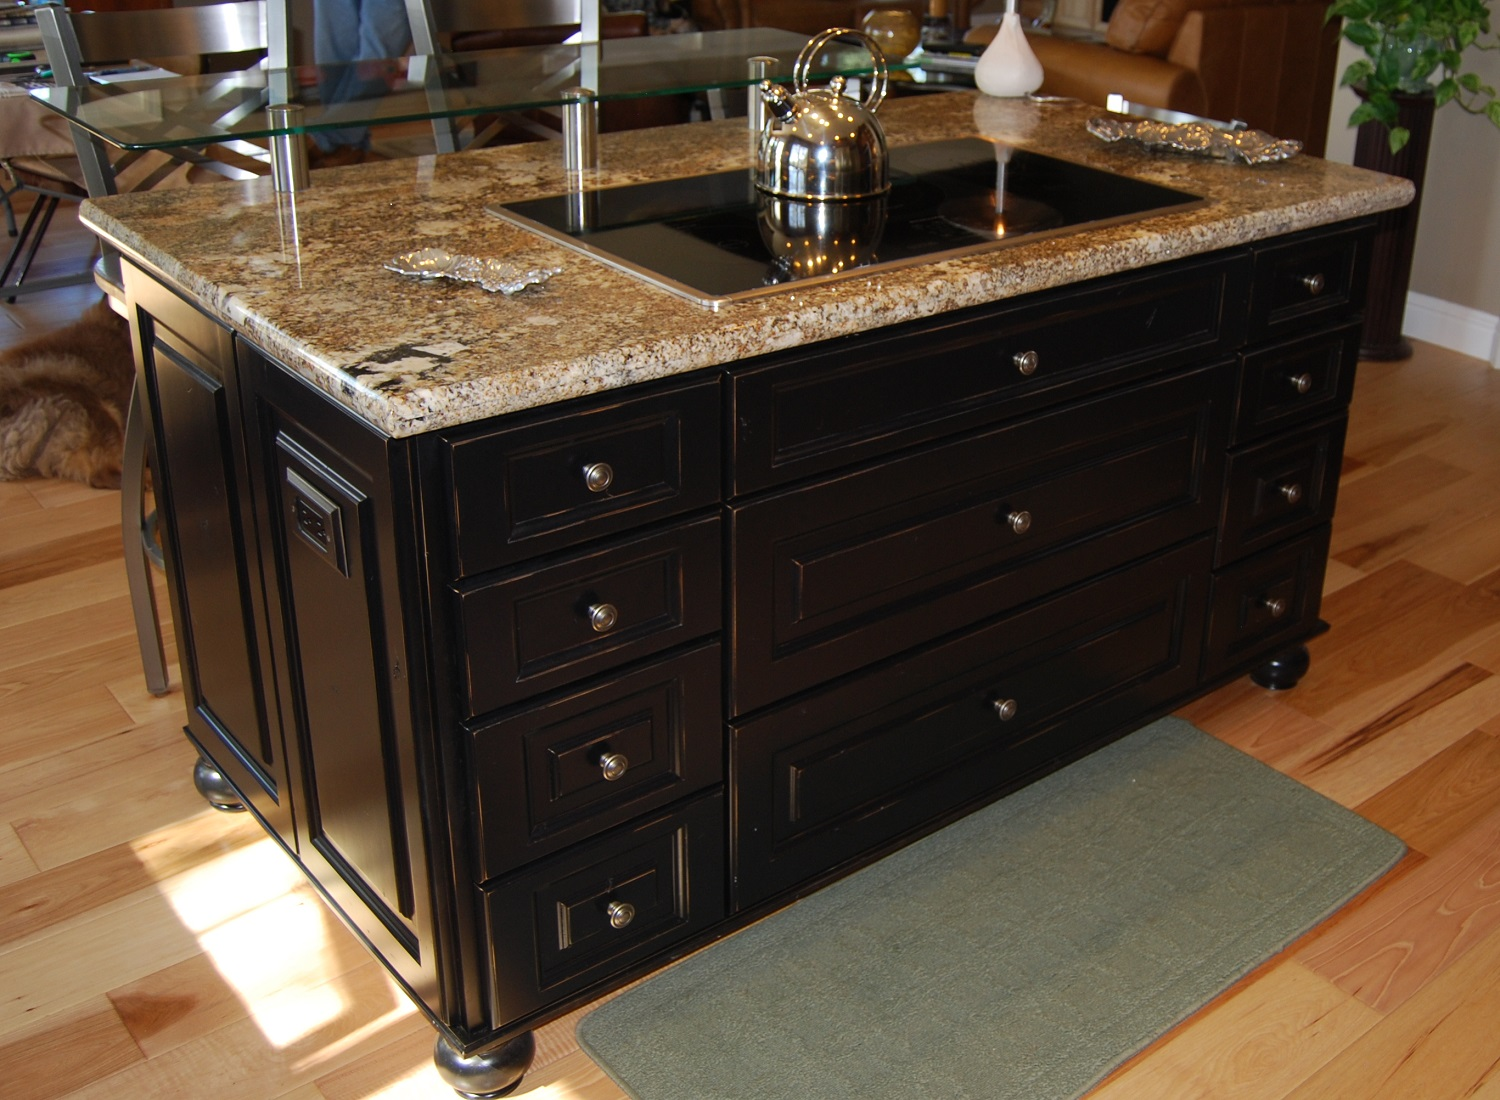 kitchen cabinets review local custom or semi custom manufactured kitchen cabinet reviews Raley blog pic 5 1